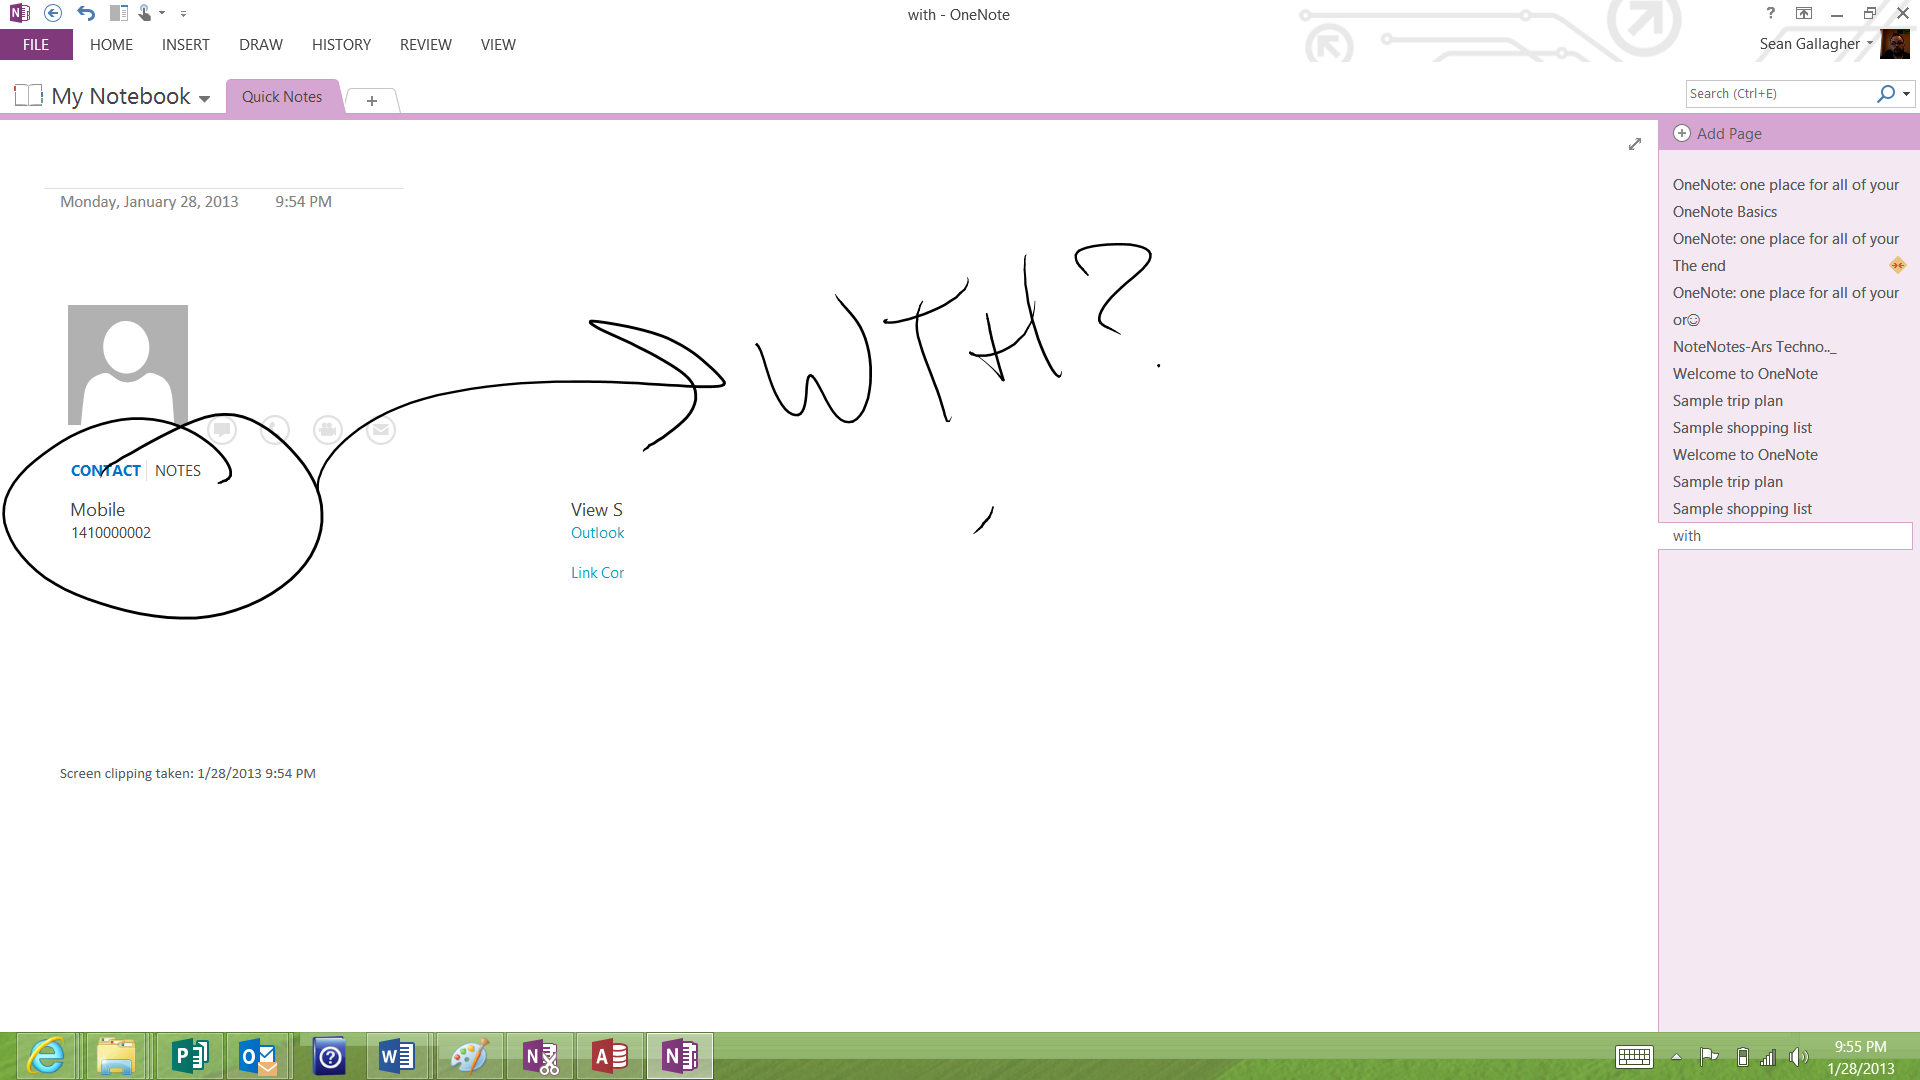 Some day, I'll actually figure out something useful to do with OneNote 2013.